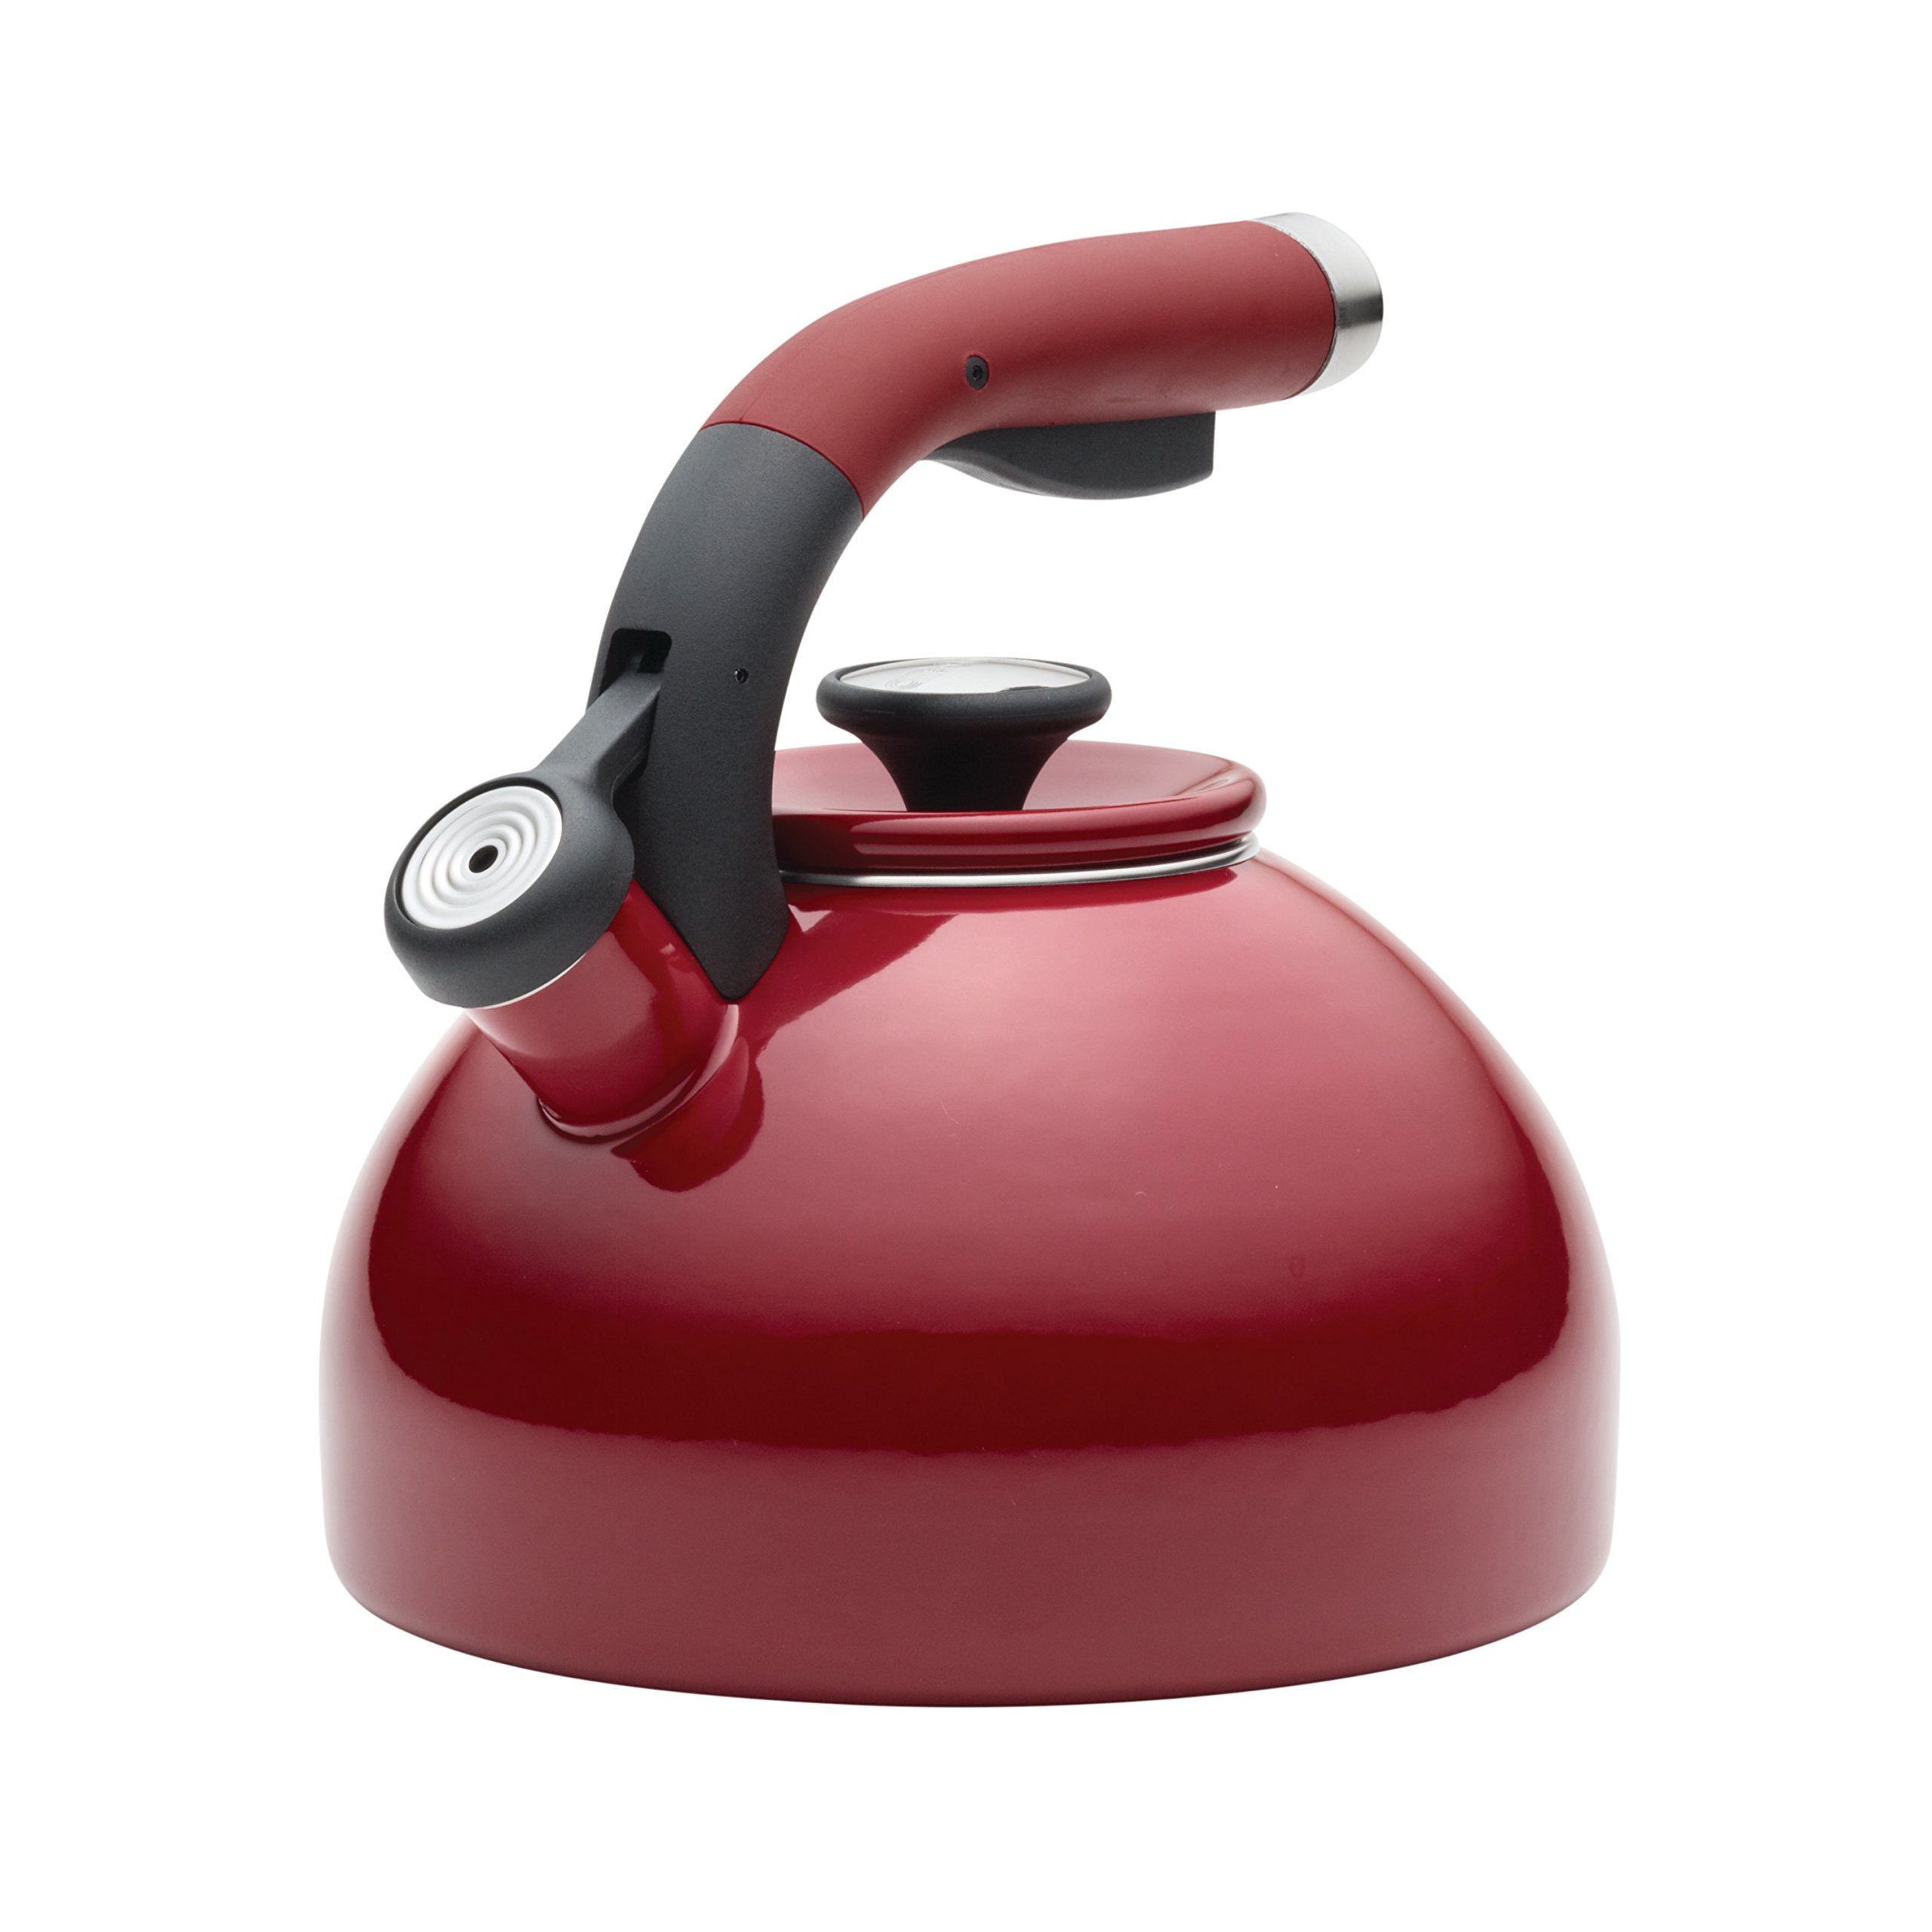 Circulon 2-Quart Morning Bird Teakettle, Circulon Red by Circulon (Image #5)